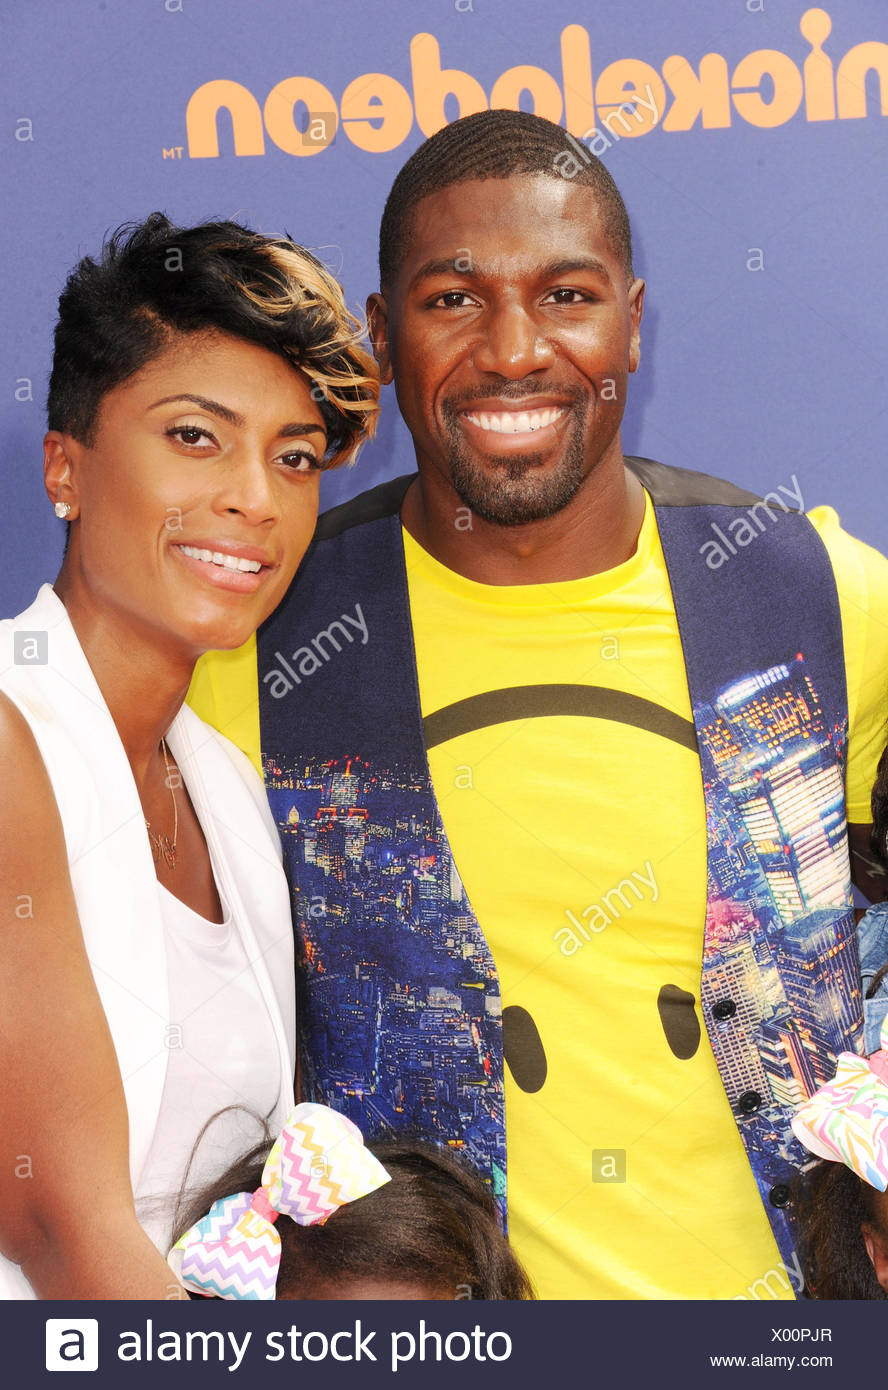 NFL player Greg Jennings and wife arrive at the Nickelodeon Kids' Choice Sports Awards 2015 at UCLA's Pauley Pavilion on July 16, 2015 in Westwood, California., Additional-Rights-Clearances-NA - Stock Image